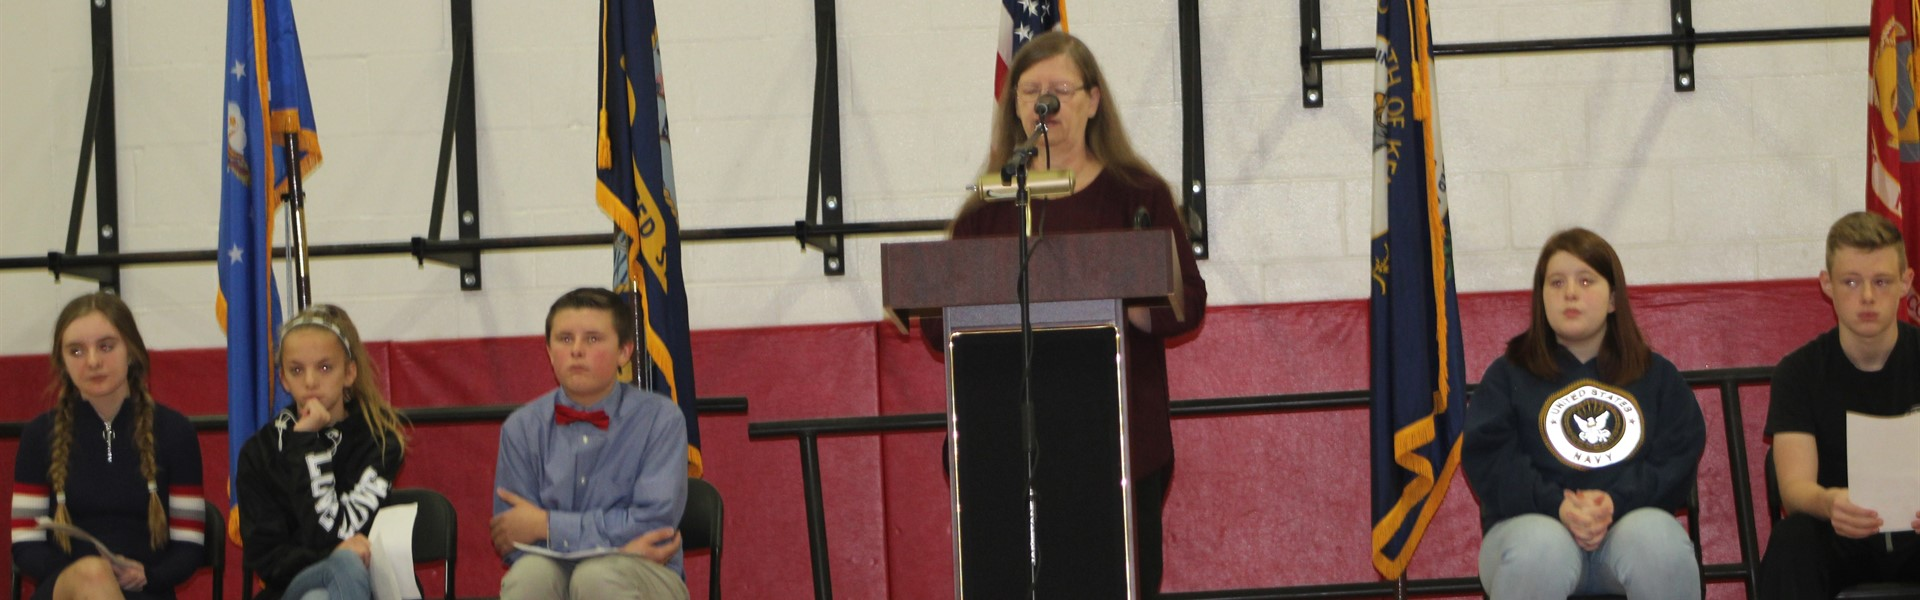 speech during veterans day